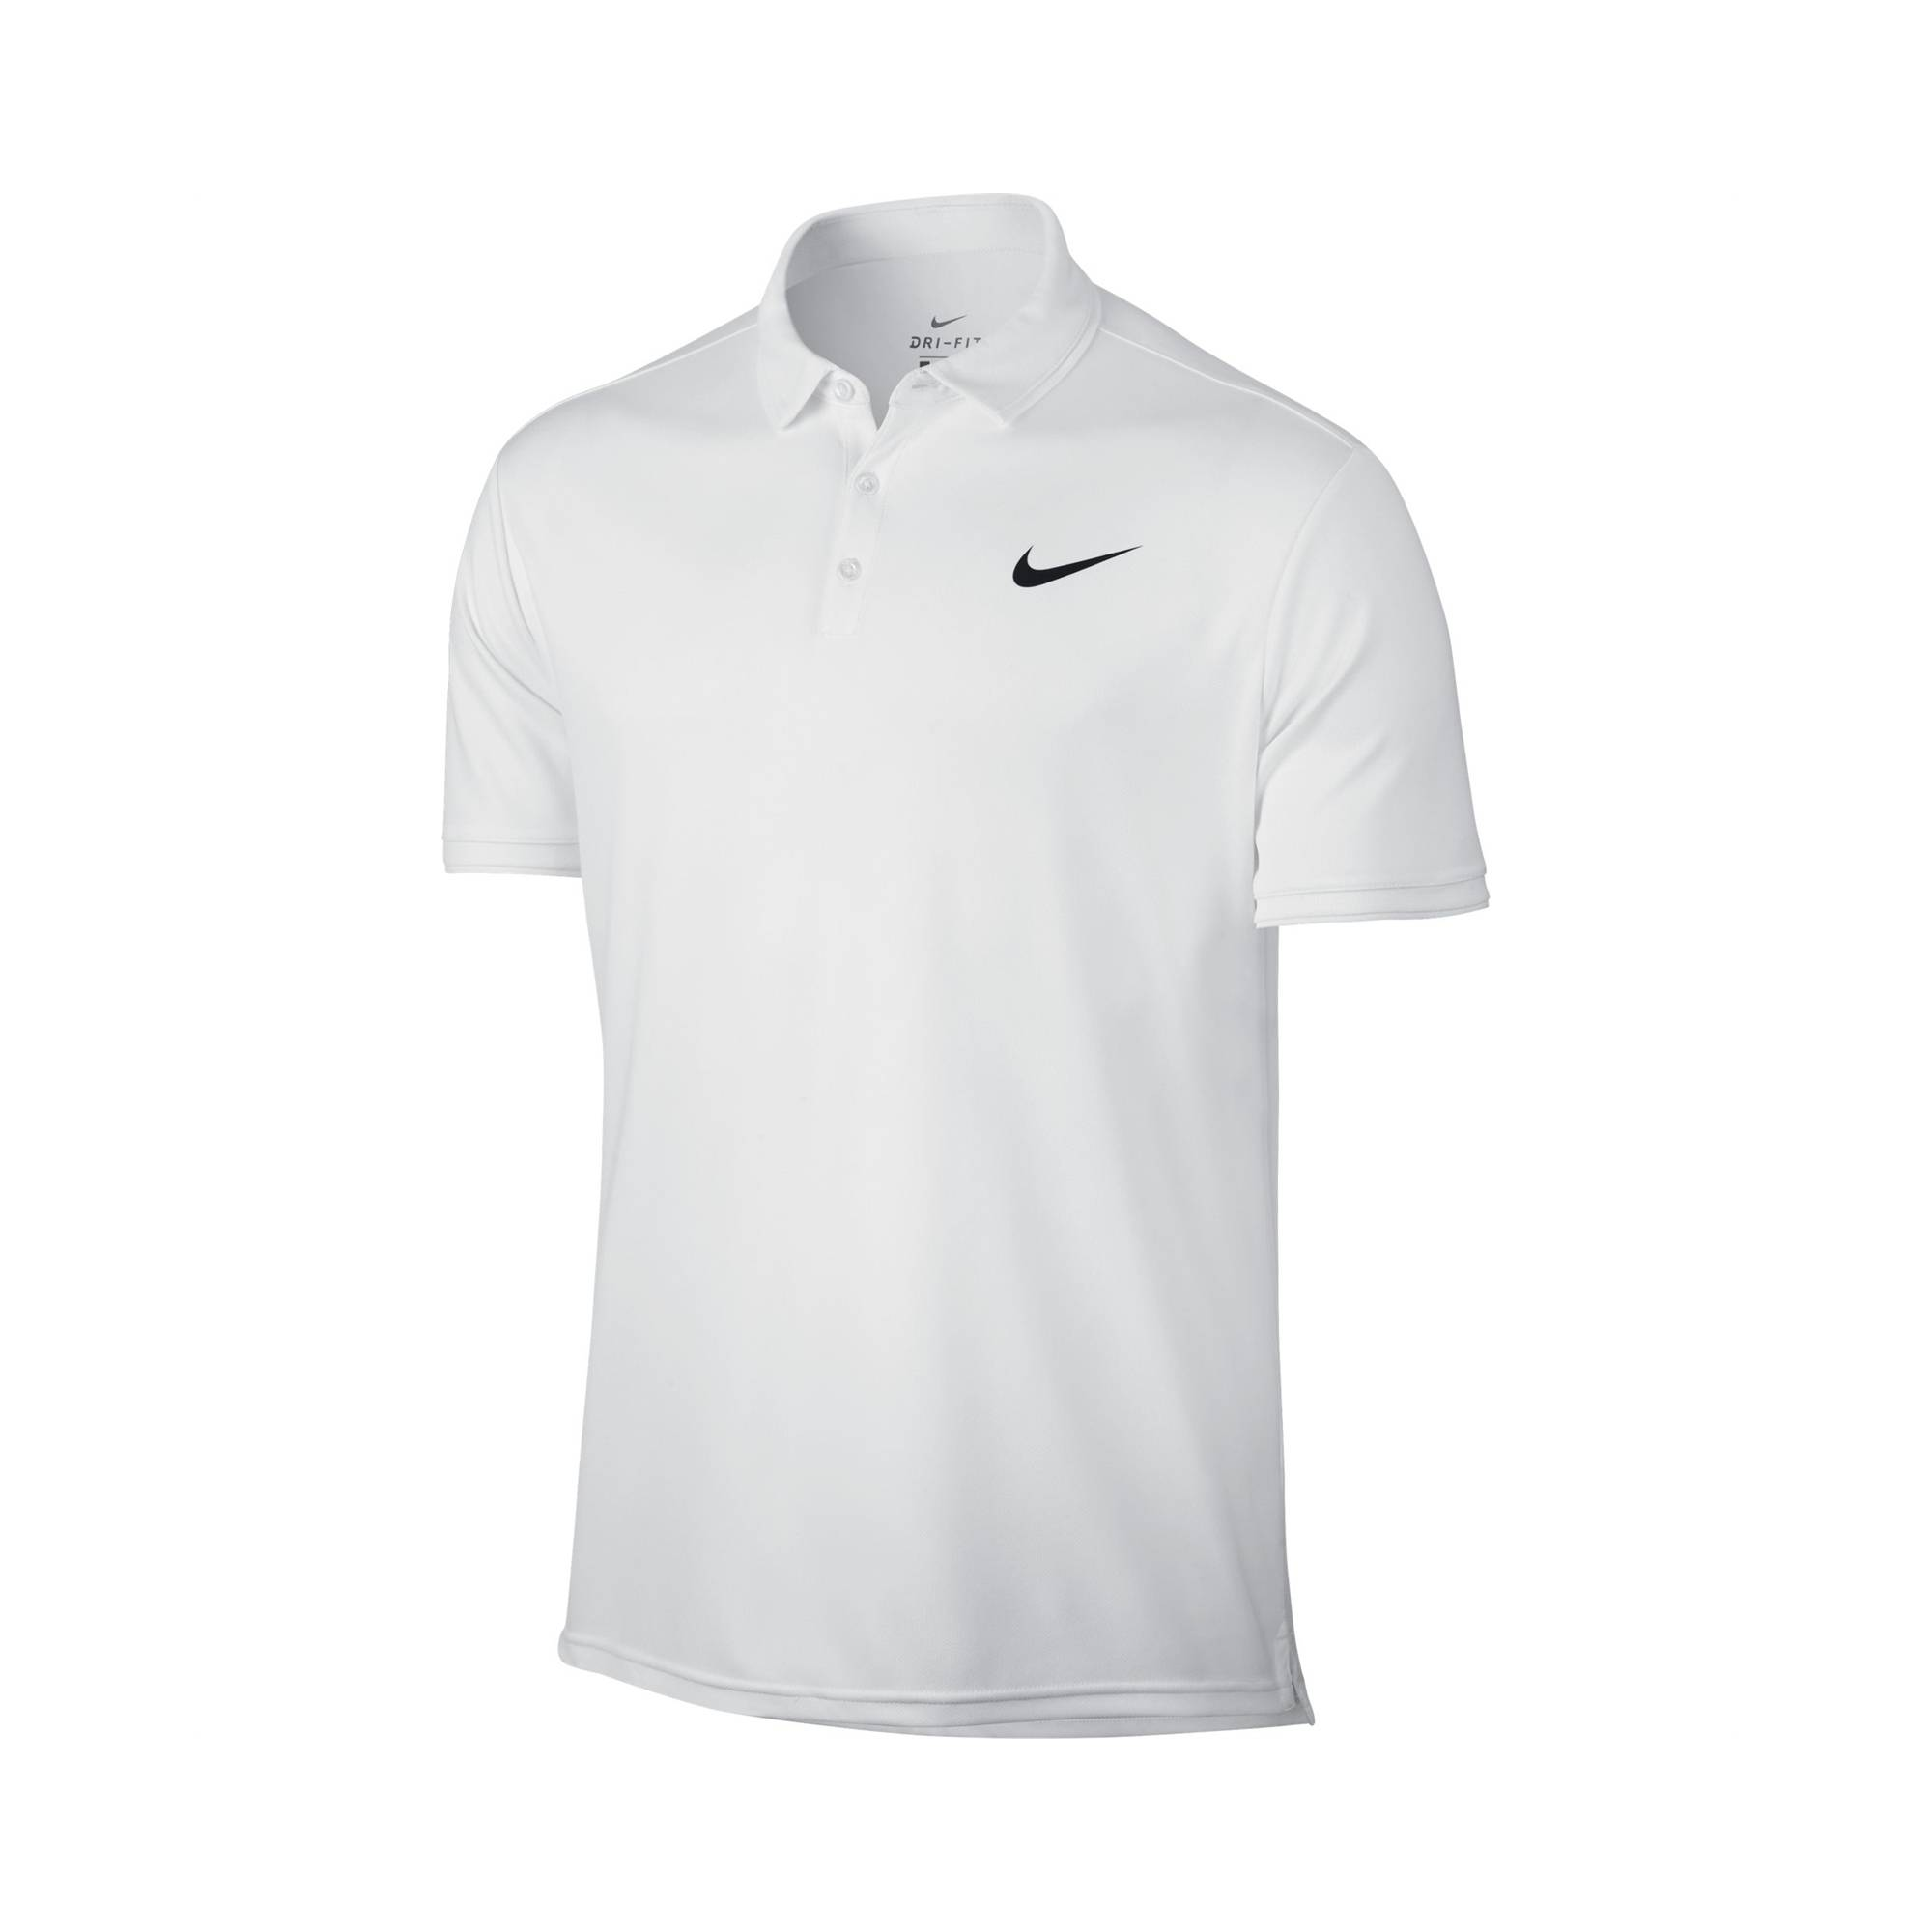 Image of Nike Dry Team Polo All White M